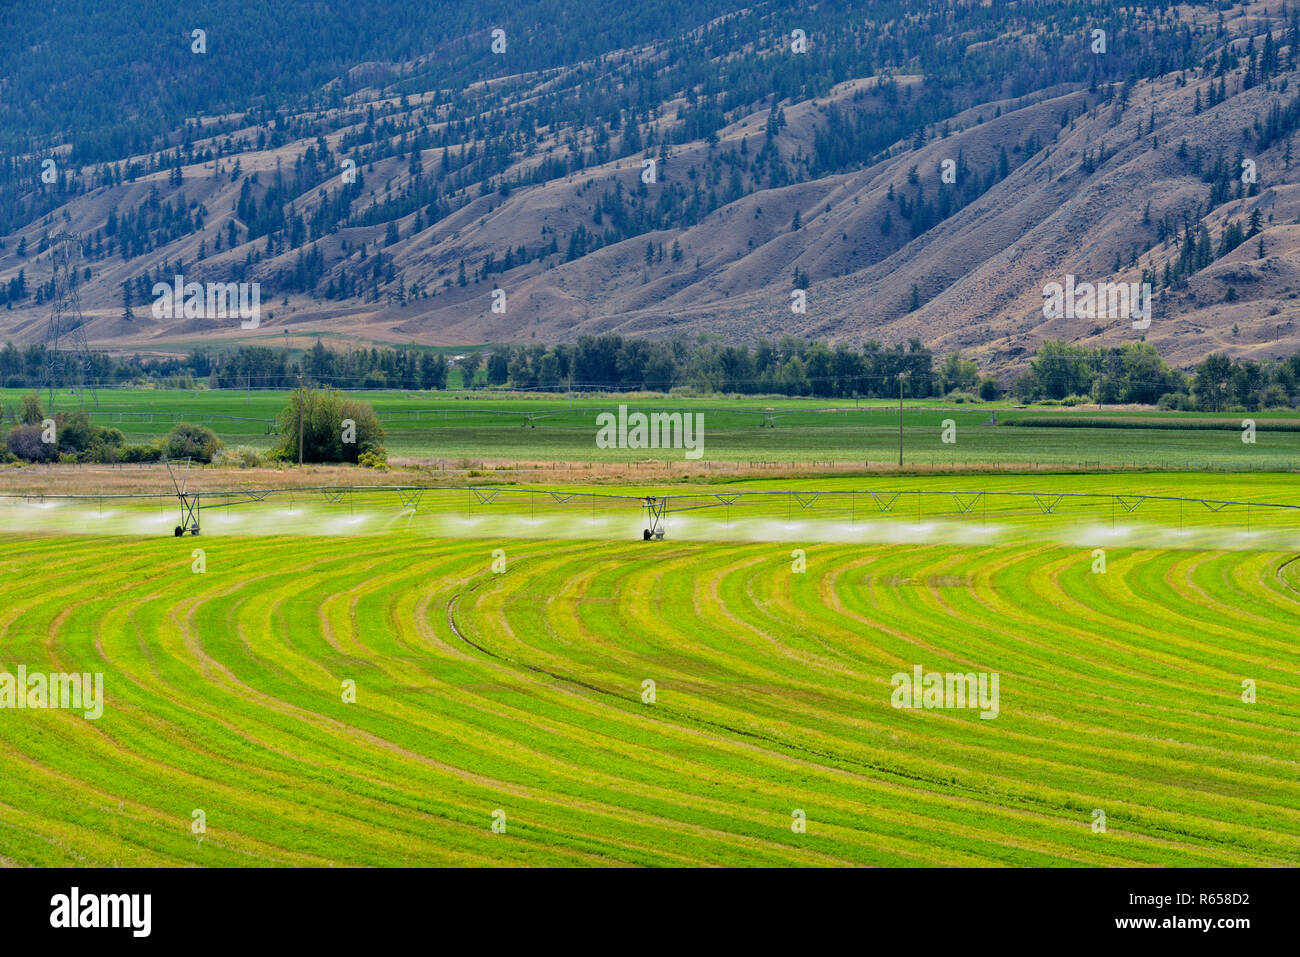 Irrigating a crop in the Thompson River Valley bottomlands, near Cache Creek, British Columbia, Canada - Stock Image